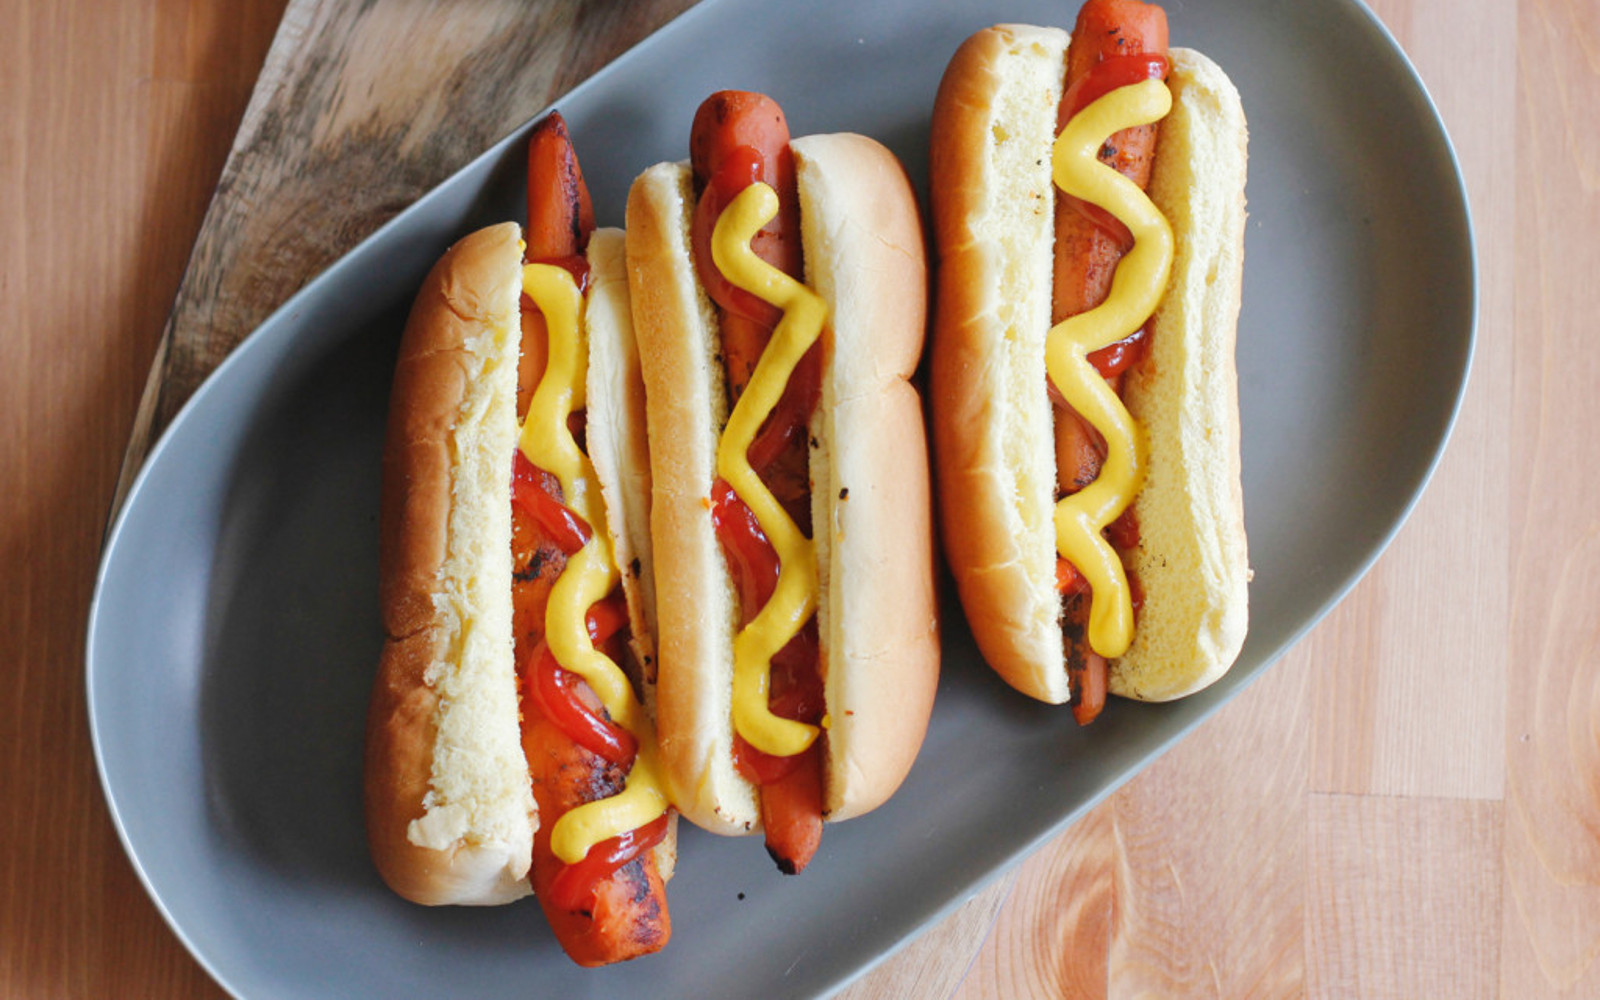 Vegan Carrot Hot Dogs